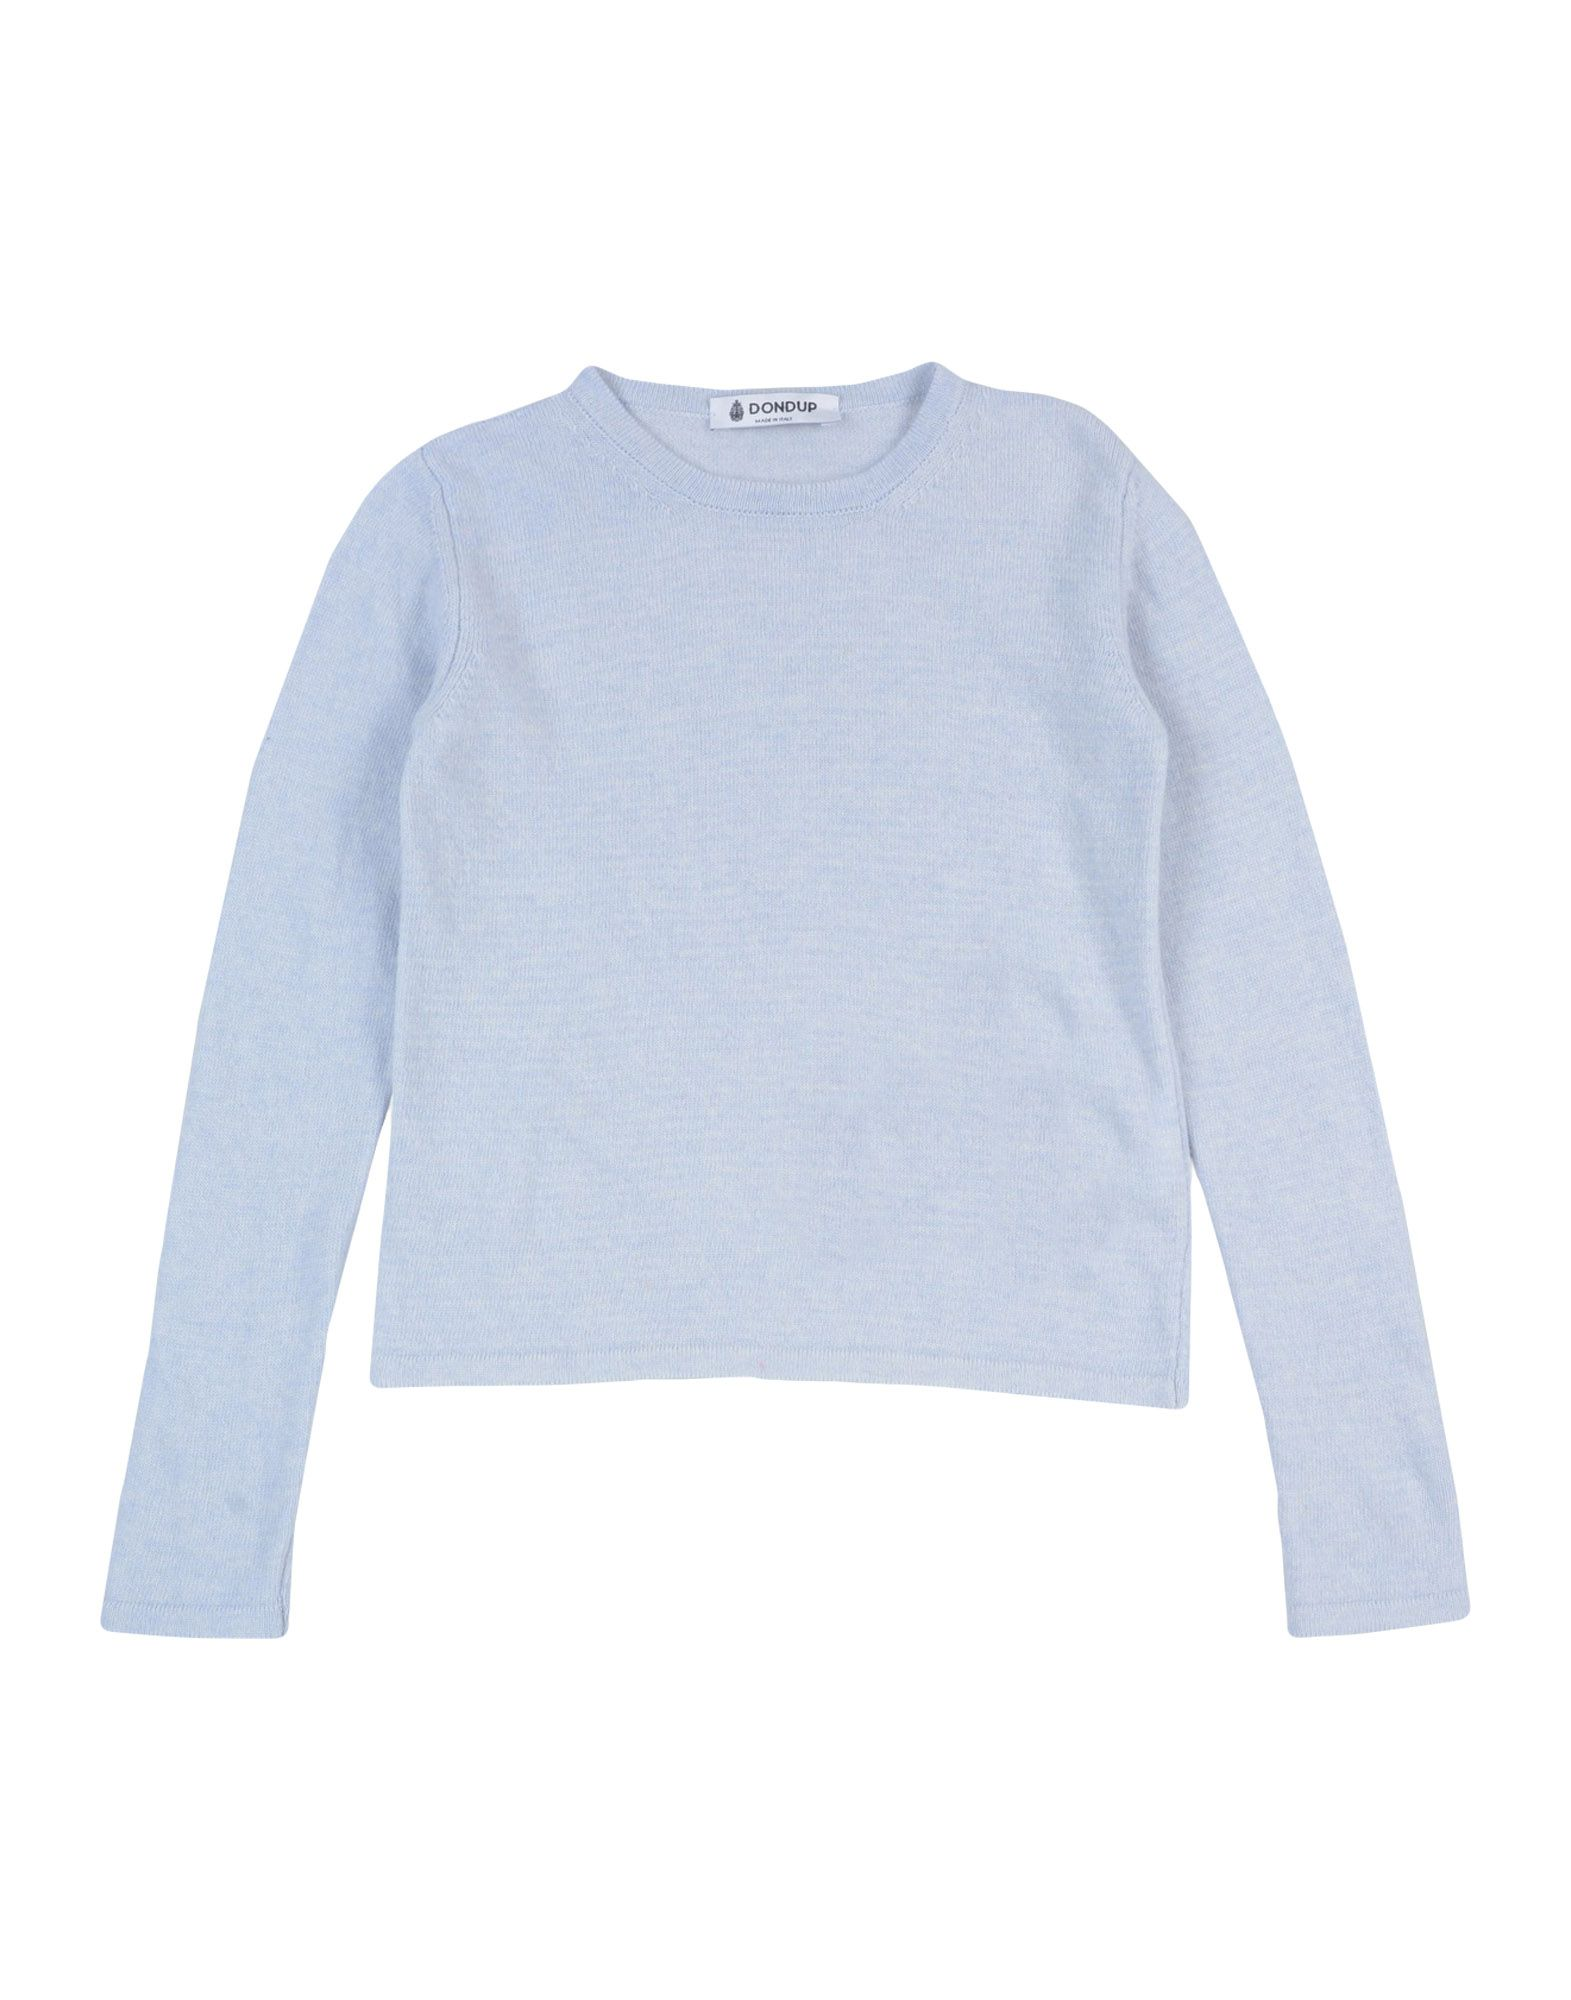 f5dcc8ac095 Dondup Sweater Girl 3-8 years online on YOOX Hong Kong